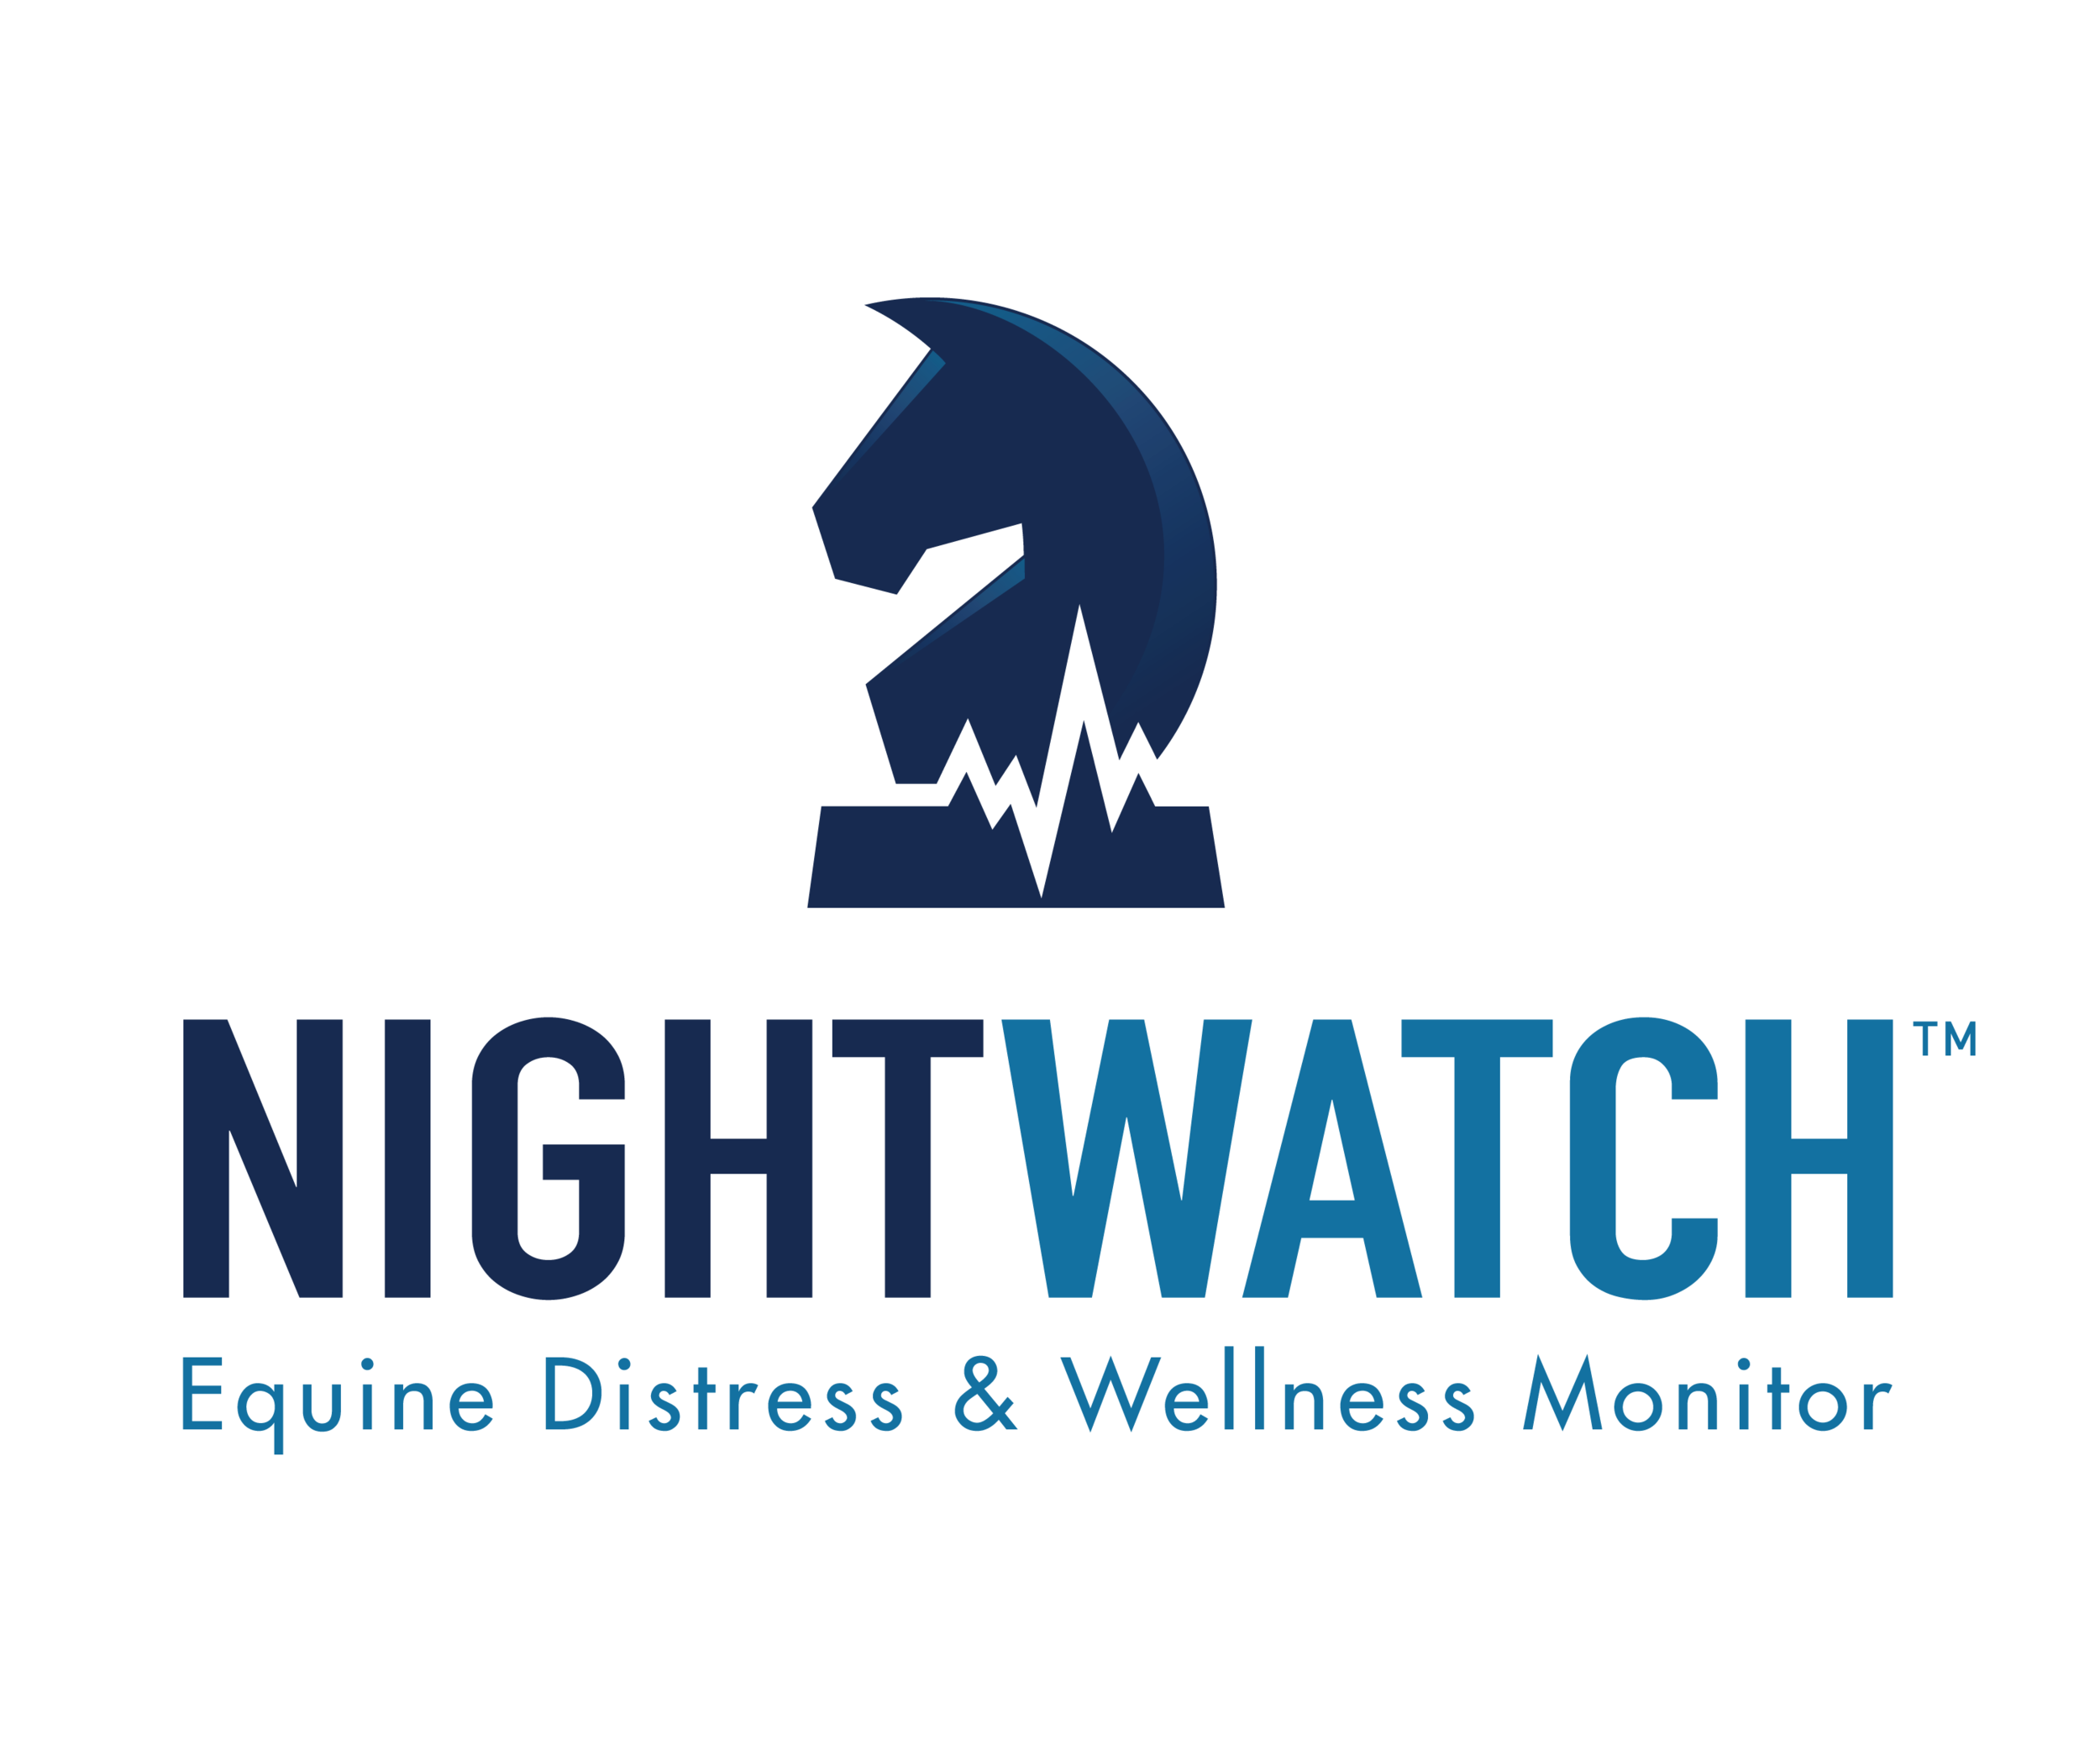 NIGHTWATCH_Vertical_Color_05042015.png